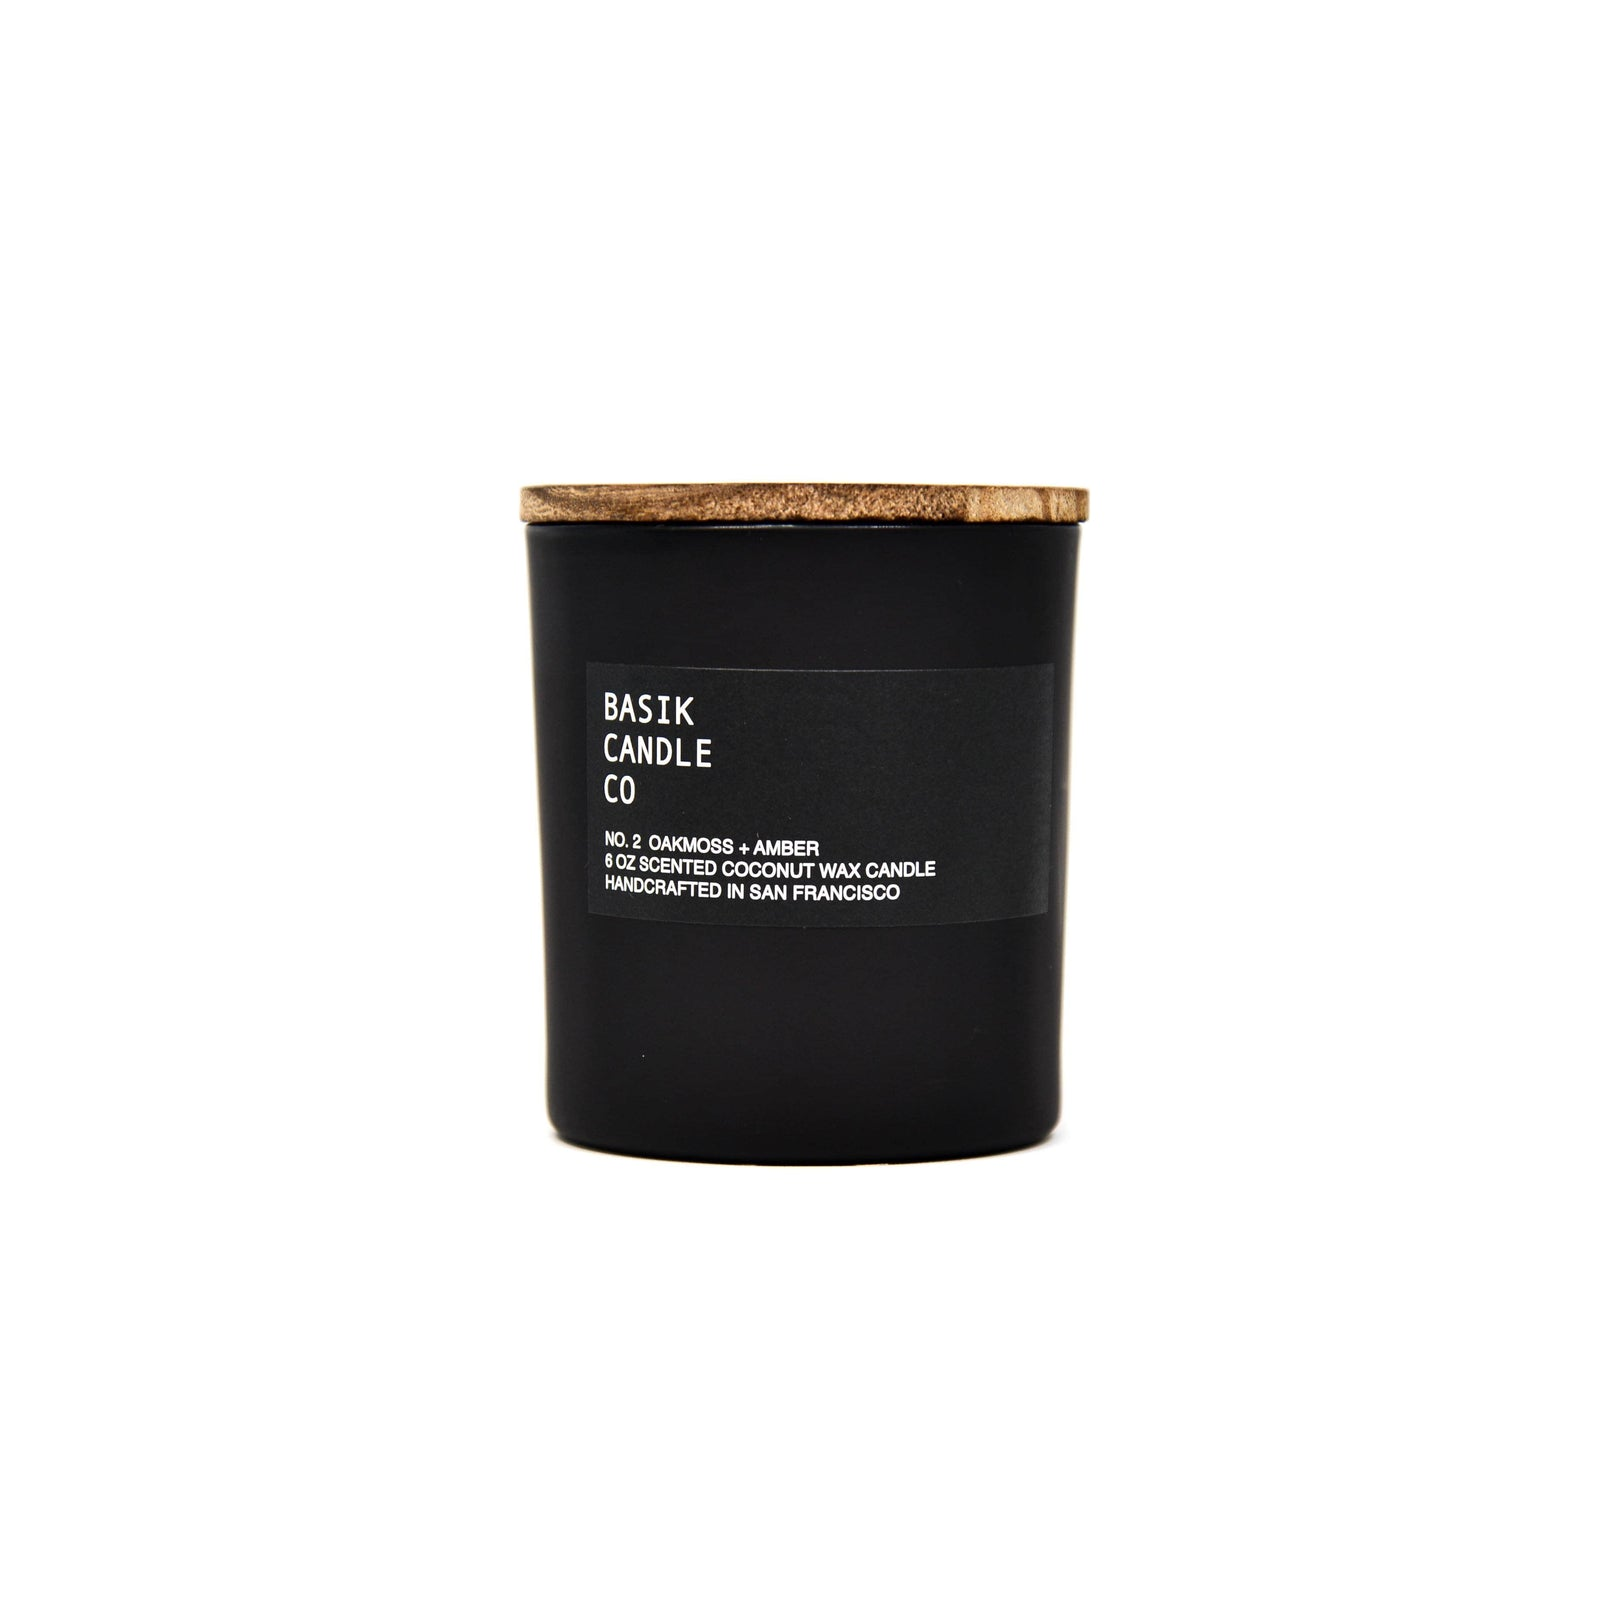 Basik Candle Co Candle No. 2 Oakmoss + Amber 6 oz Candle